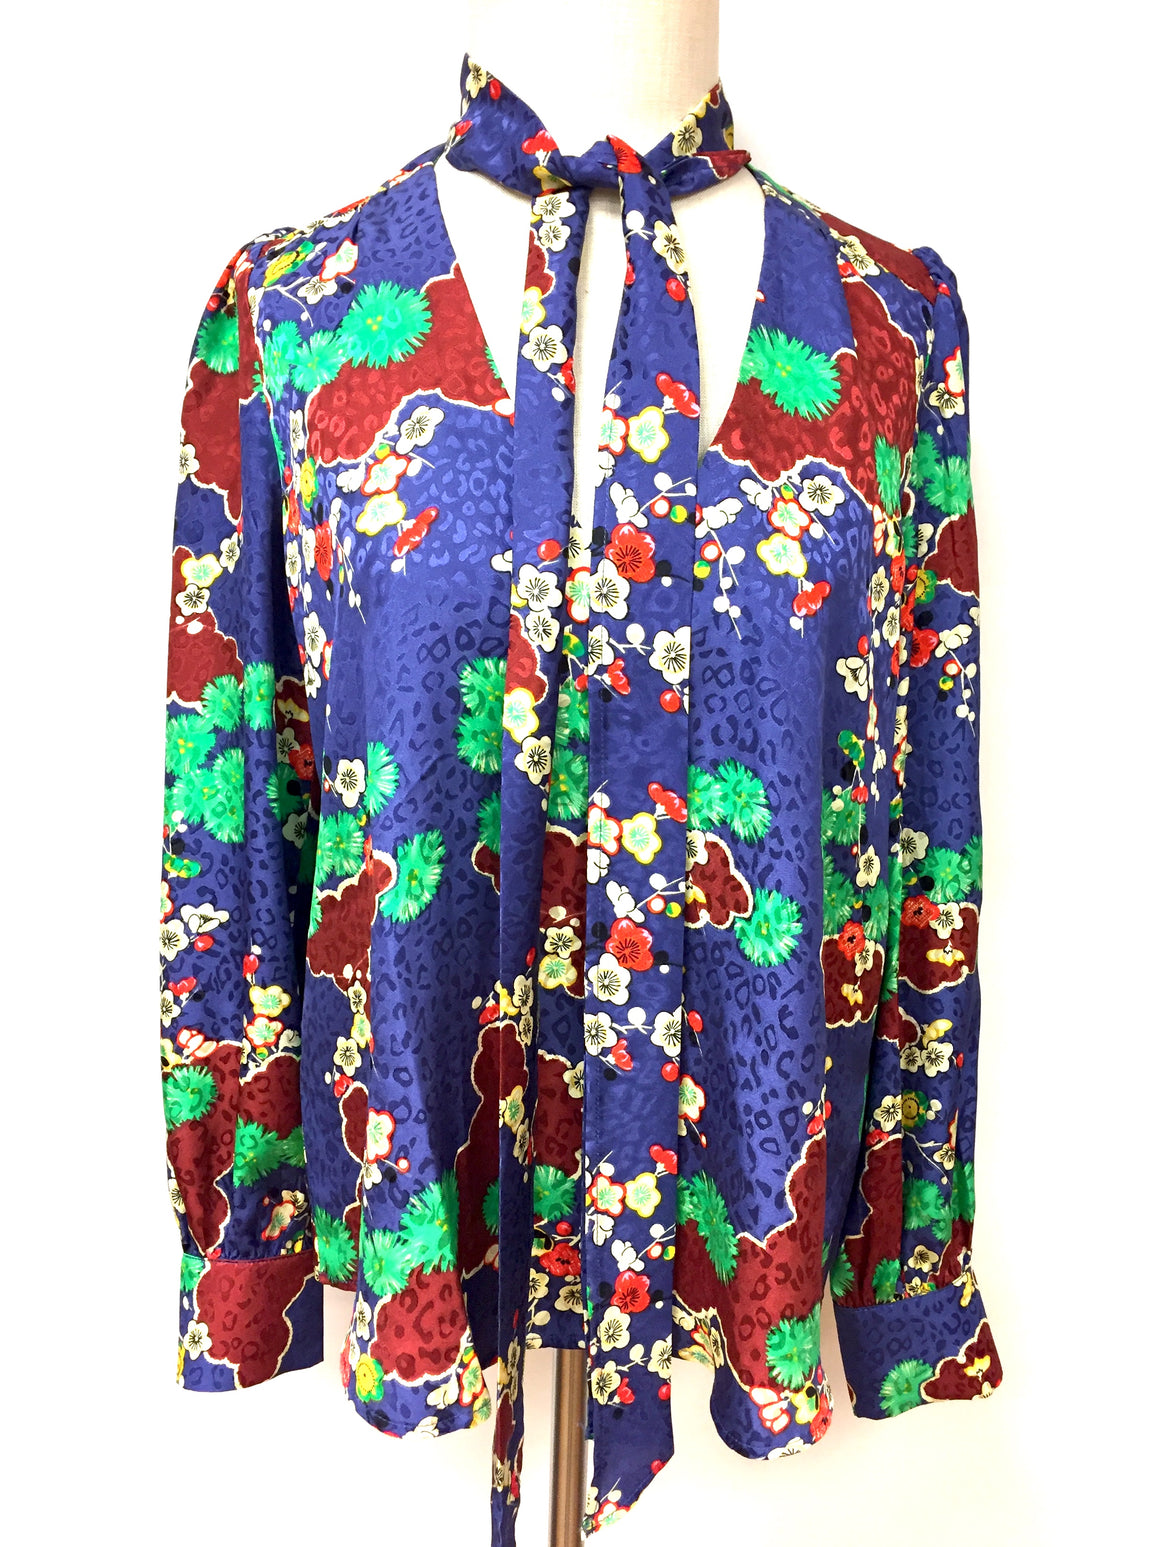 RIXO LONDON New Royal-Blue/Multicolor Floral-Print Silk Jacquard Blouse Top Size: M